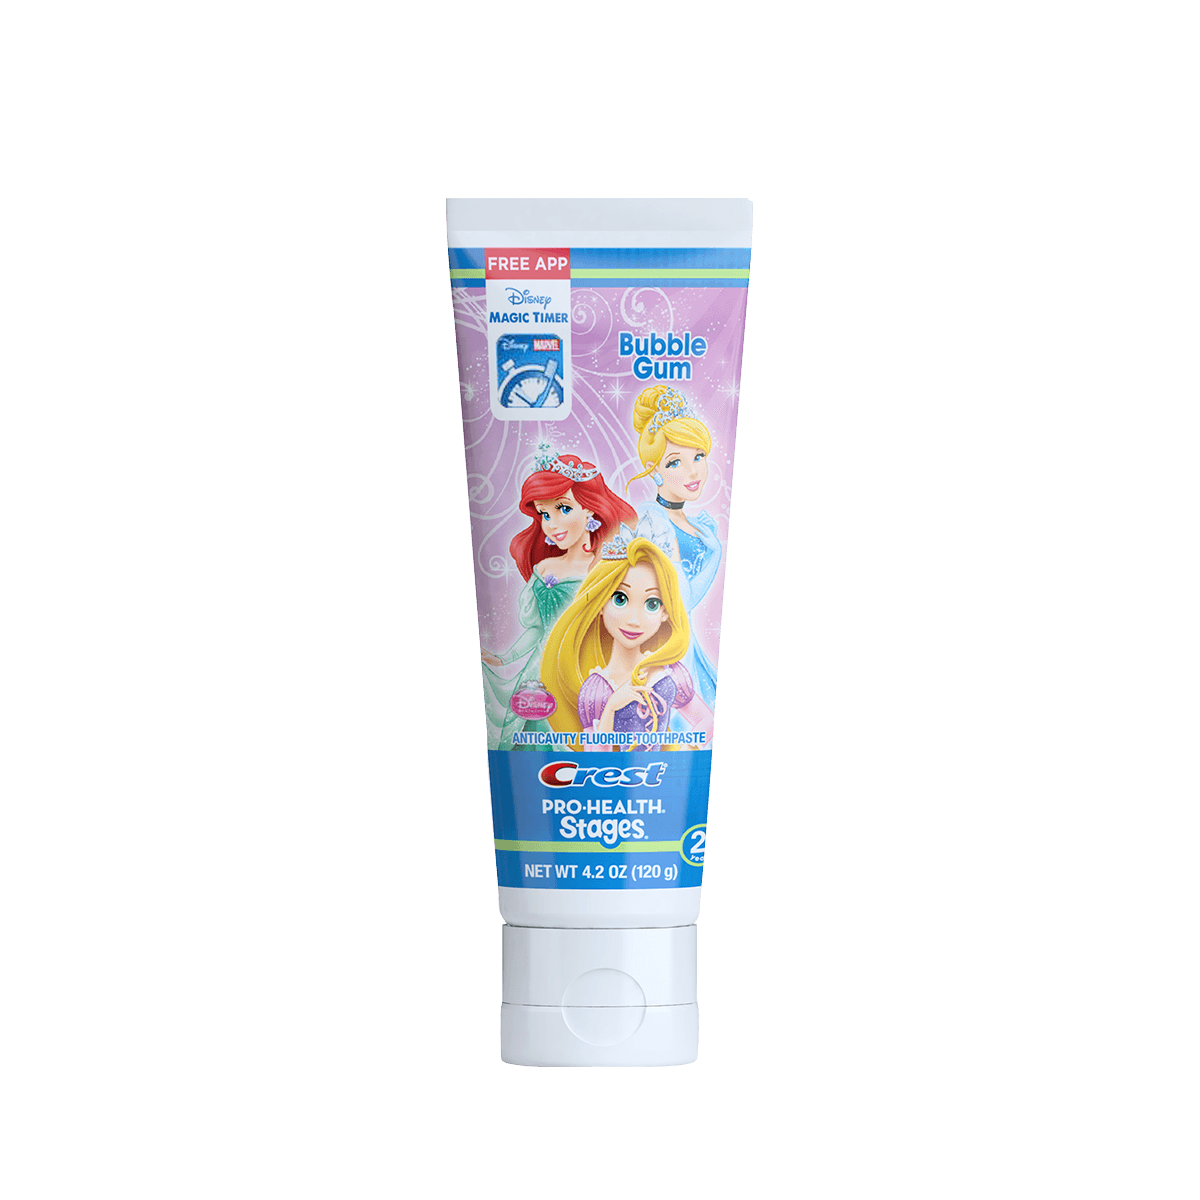 Crest Pro Health Stages Disney Princess Toothpaste | Kids | Pinterest